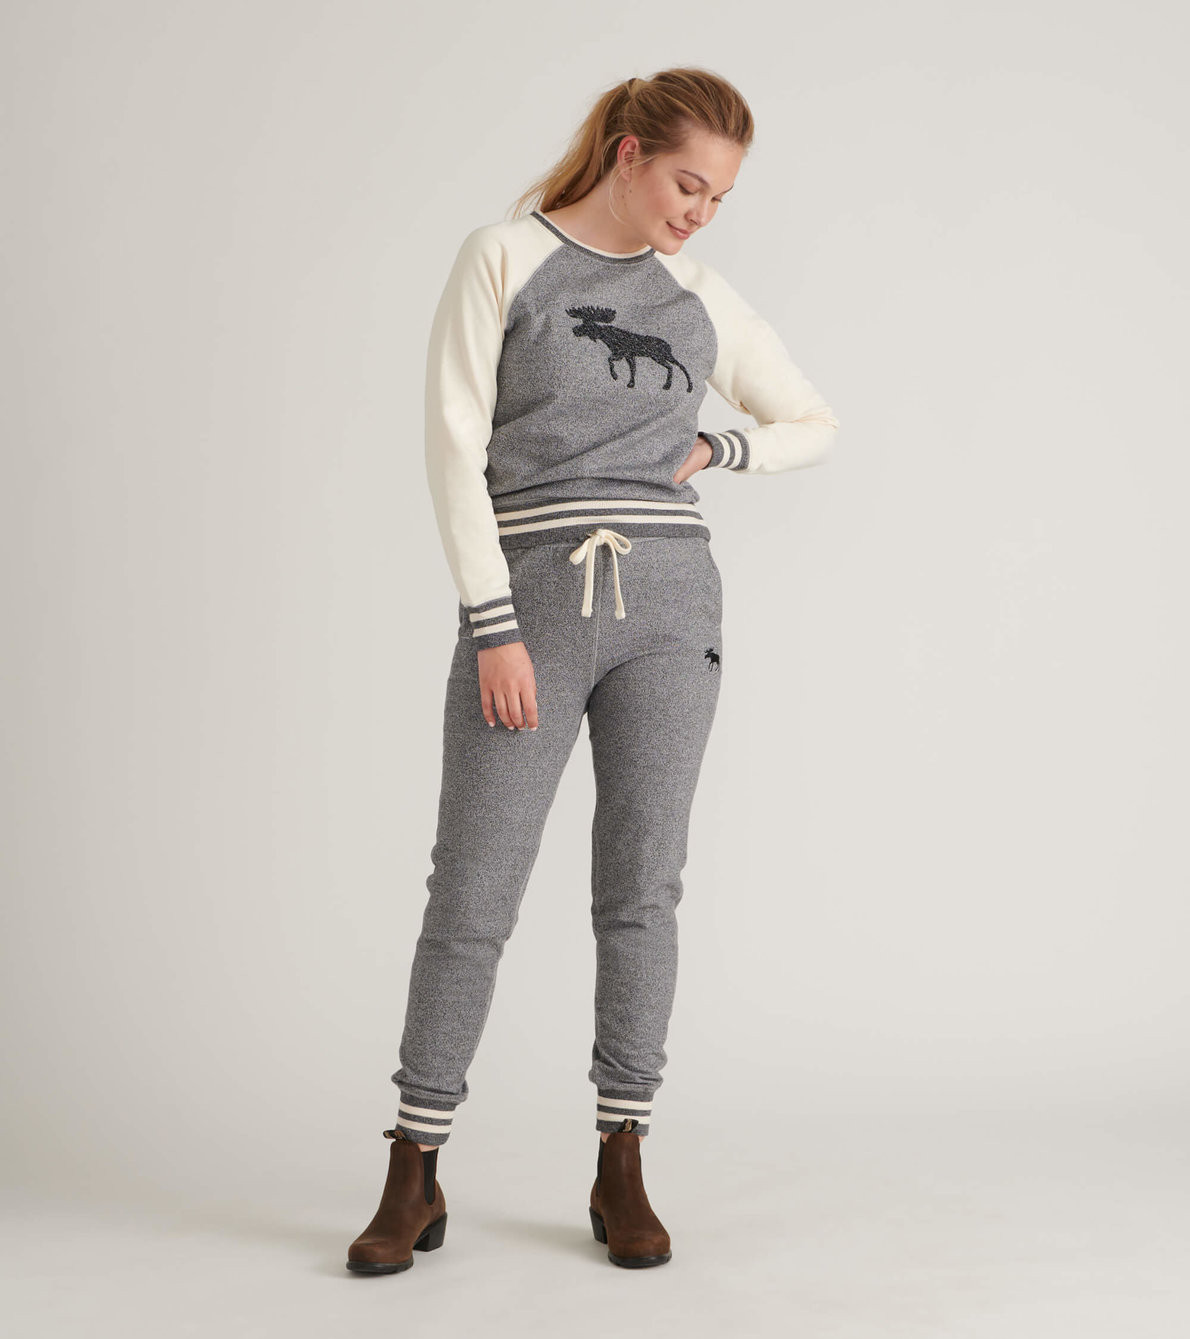 View larger image of Marled Grey Moose Women's Heritage Slim Fit Joggers